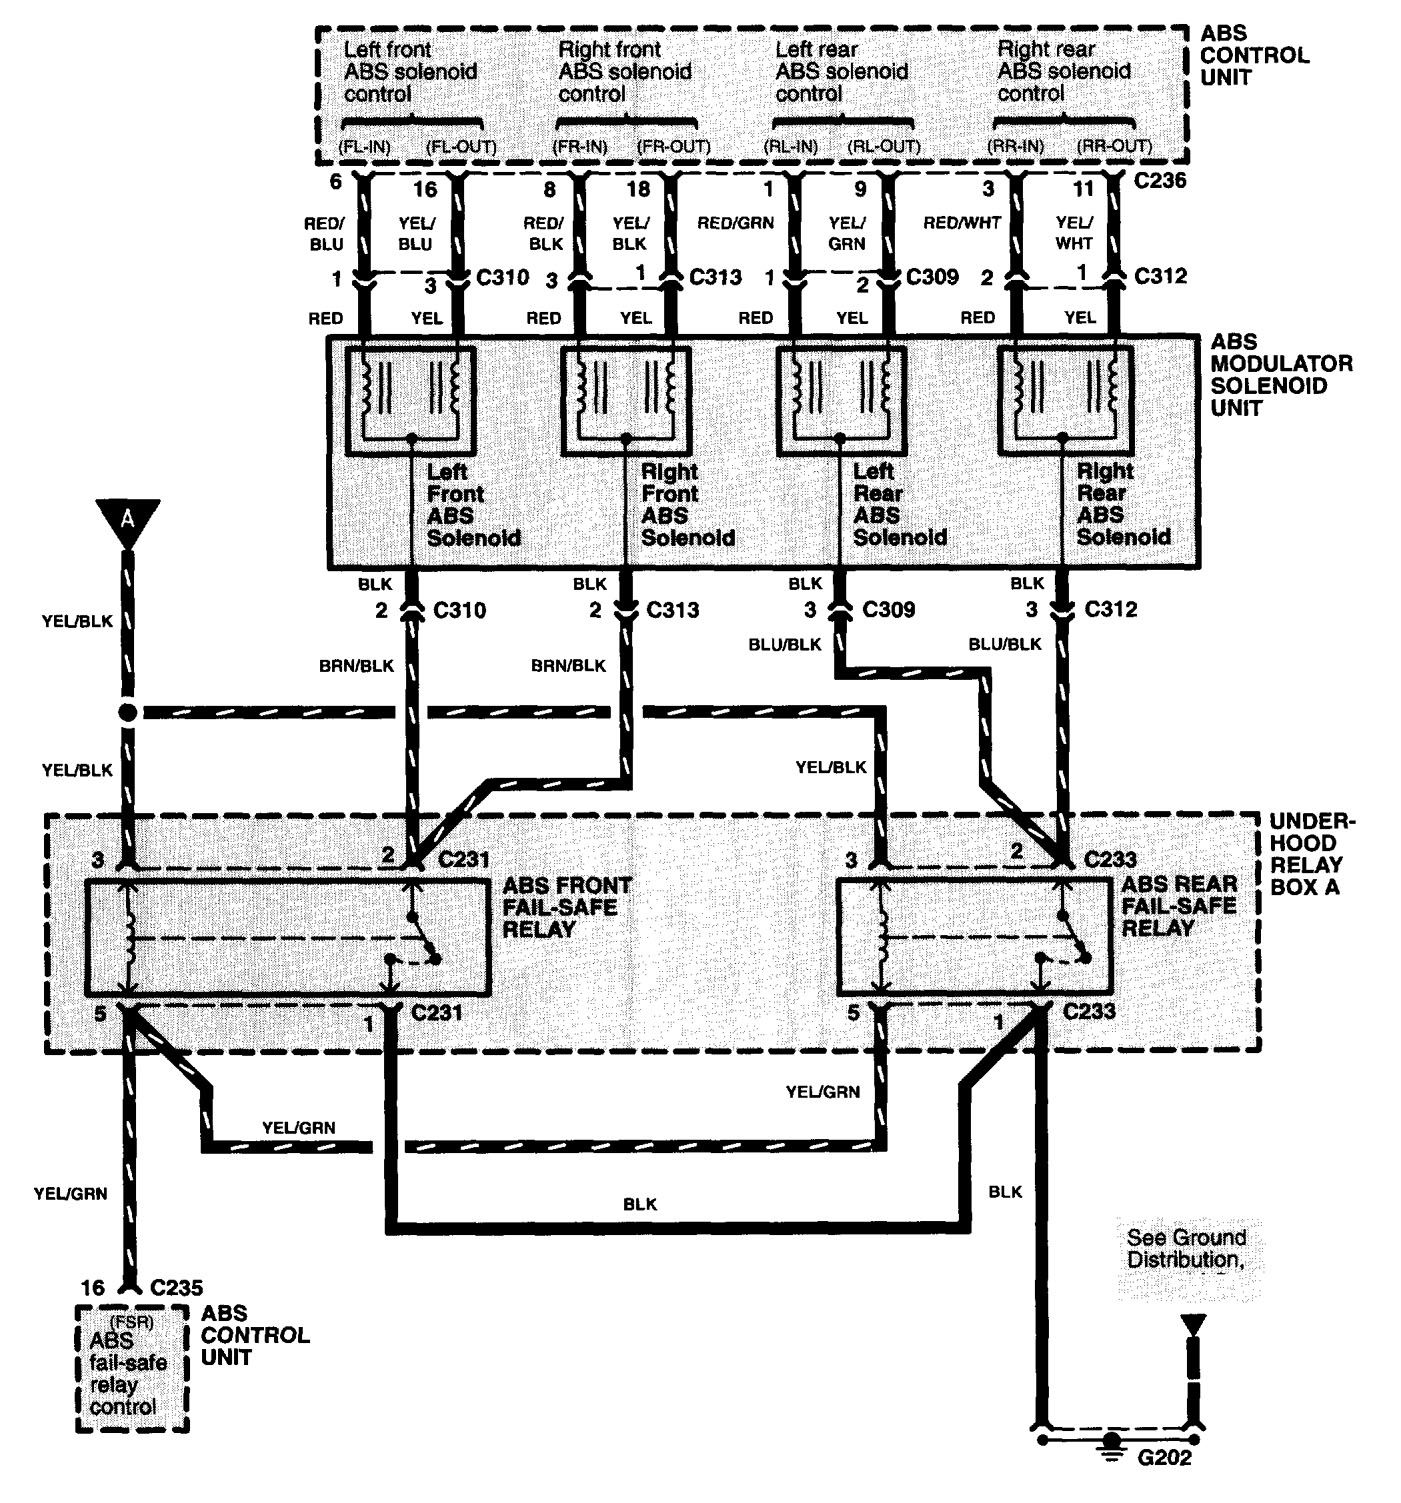 1981 Yamaha Xs850 Wiring Diagram Sr500 Engine Diagrams Fzr600